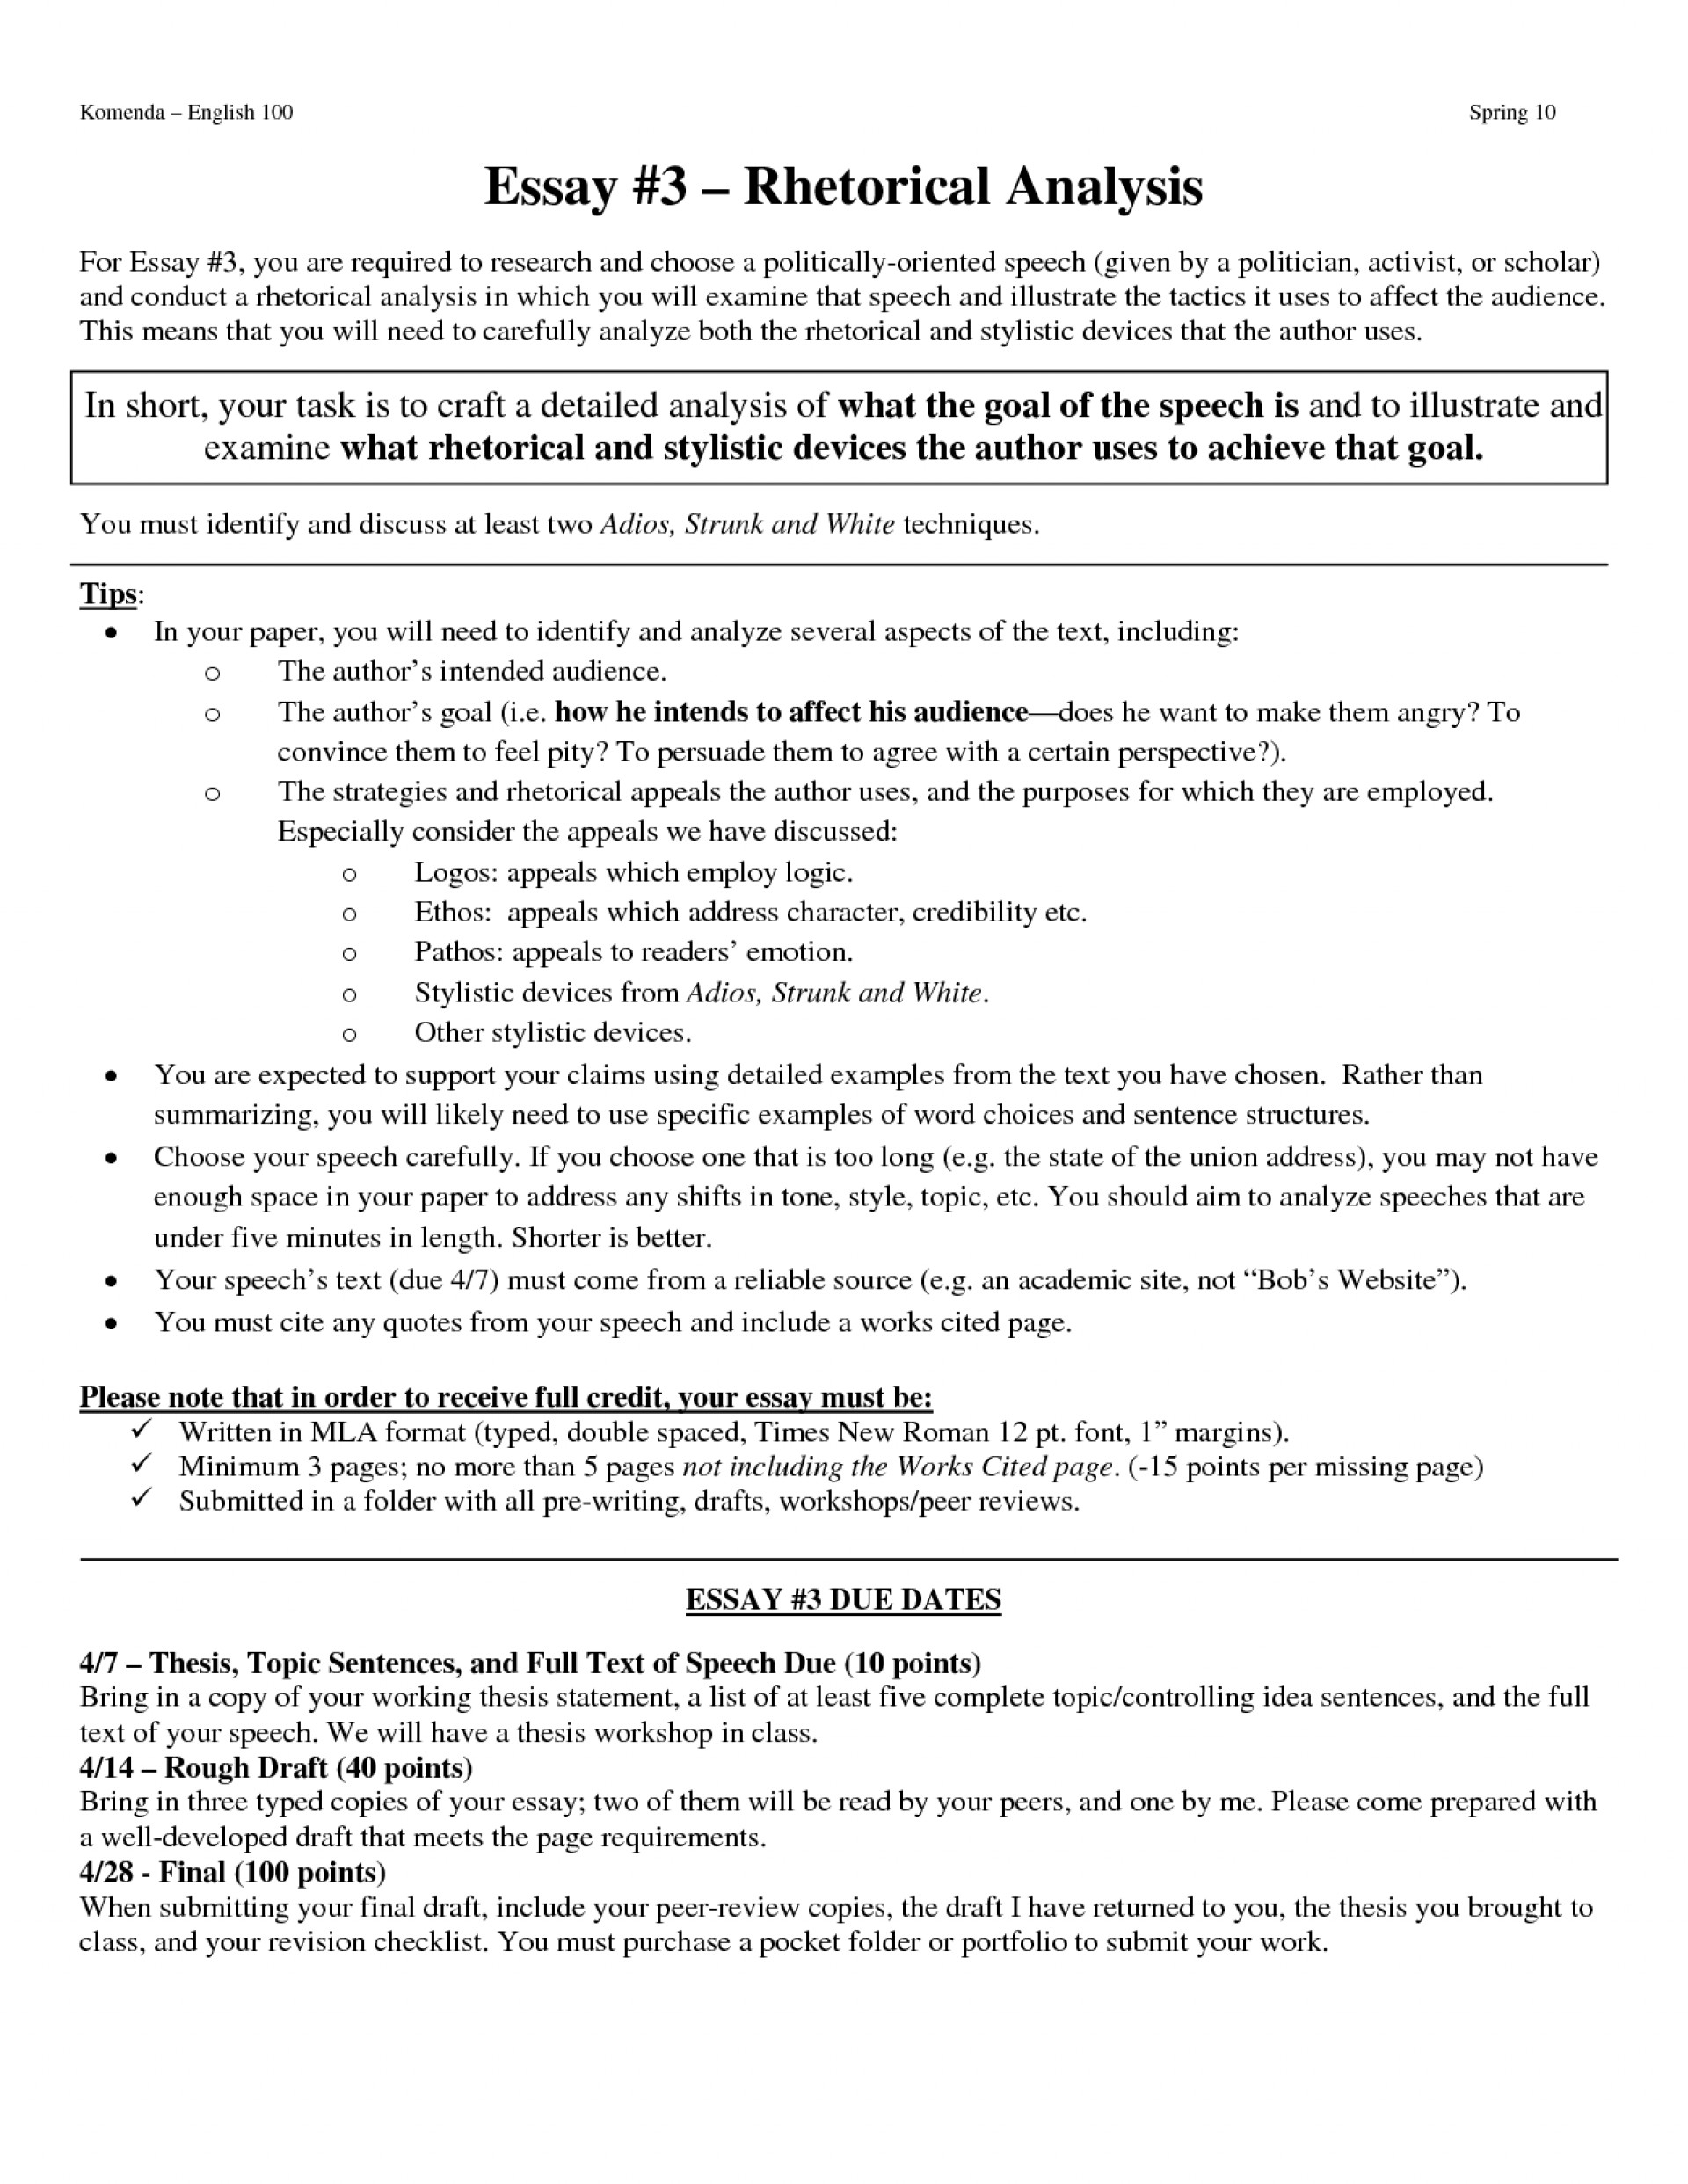 017 Rhetorical Essay Outline Analysis Writing How Write Pictureample The Best Format Sample Ap Visual Layout